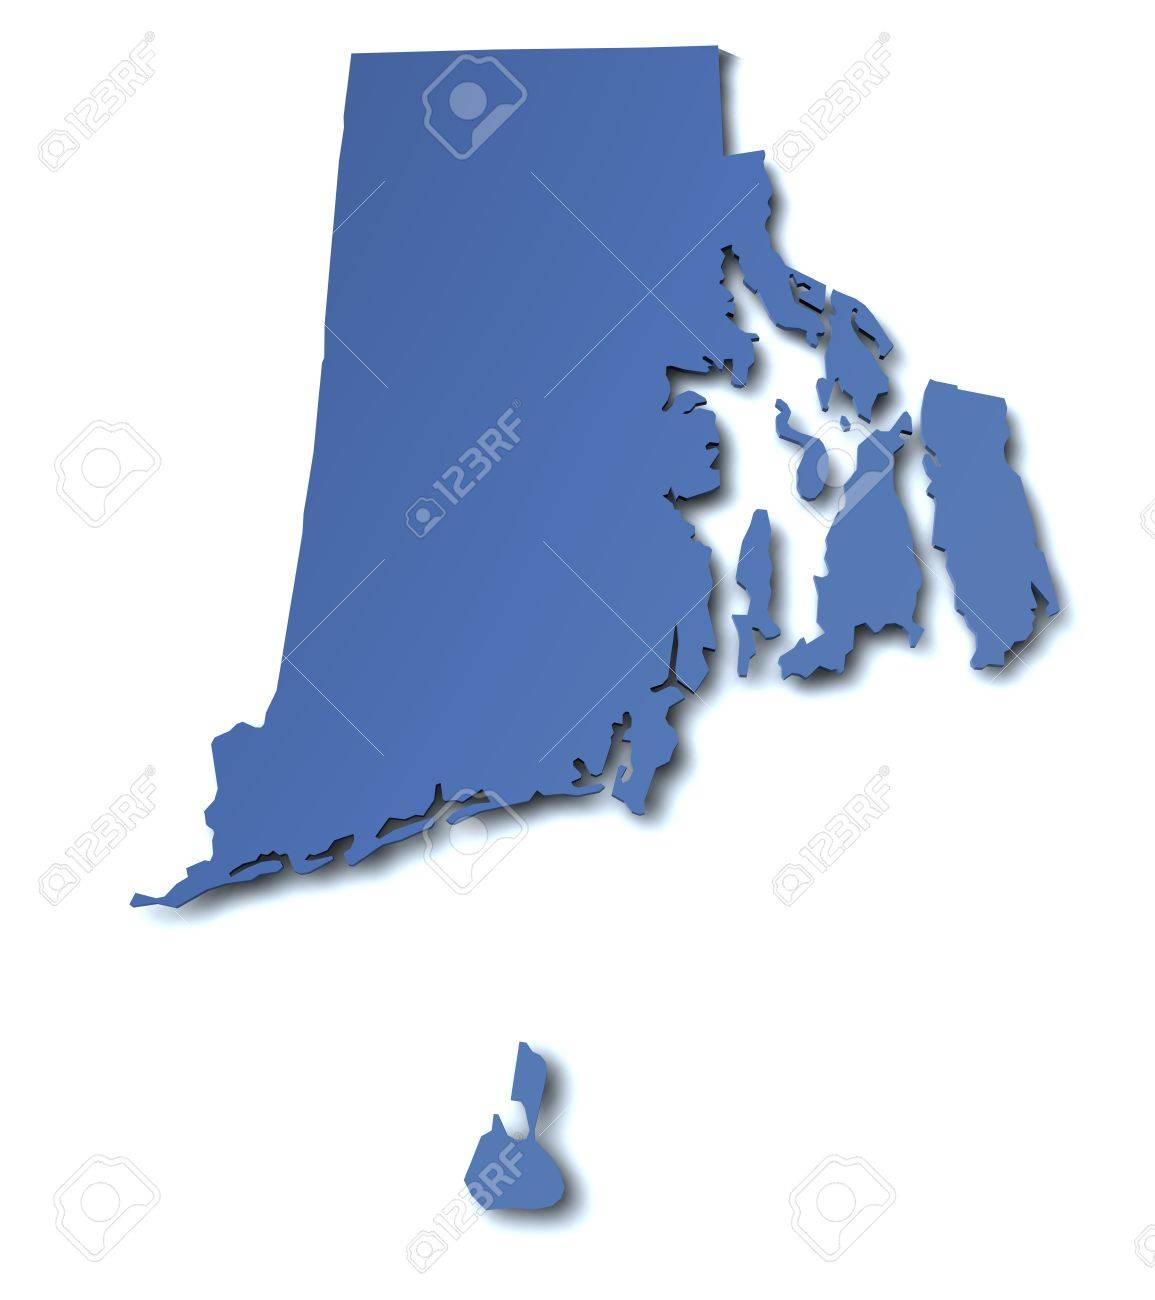 Map Of Rhode Island USA Stock Photo Picture And Royalty Free - Rhode island in usa map